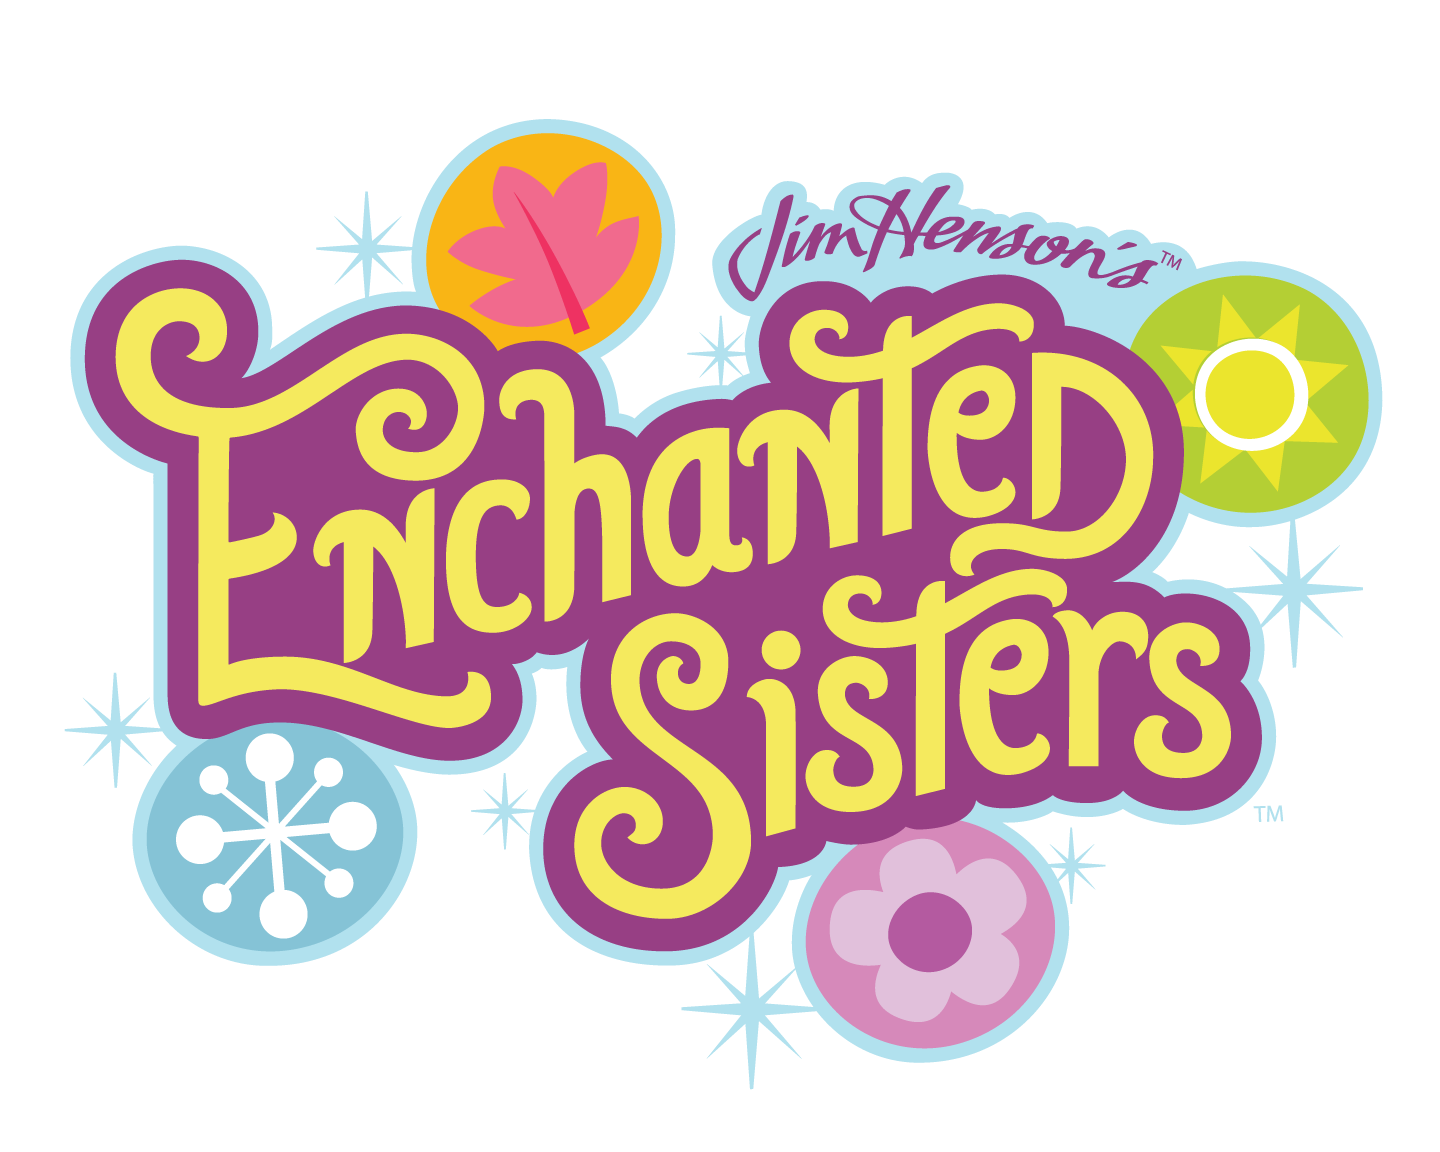 Enchanted Sisters